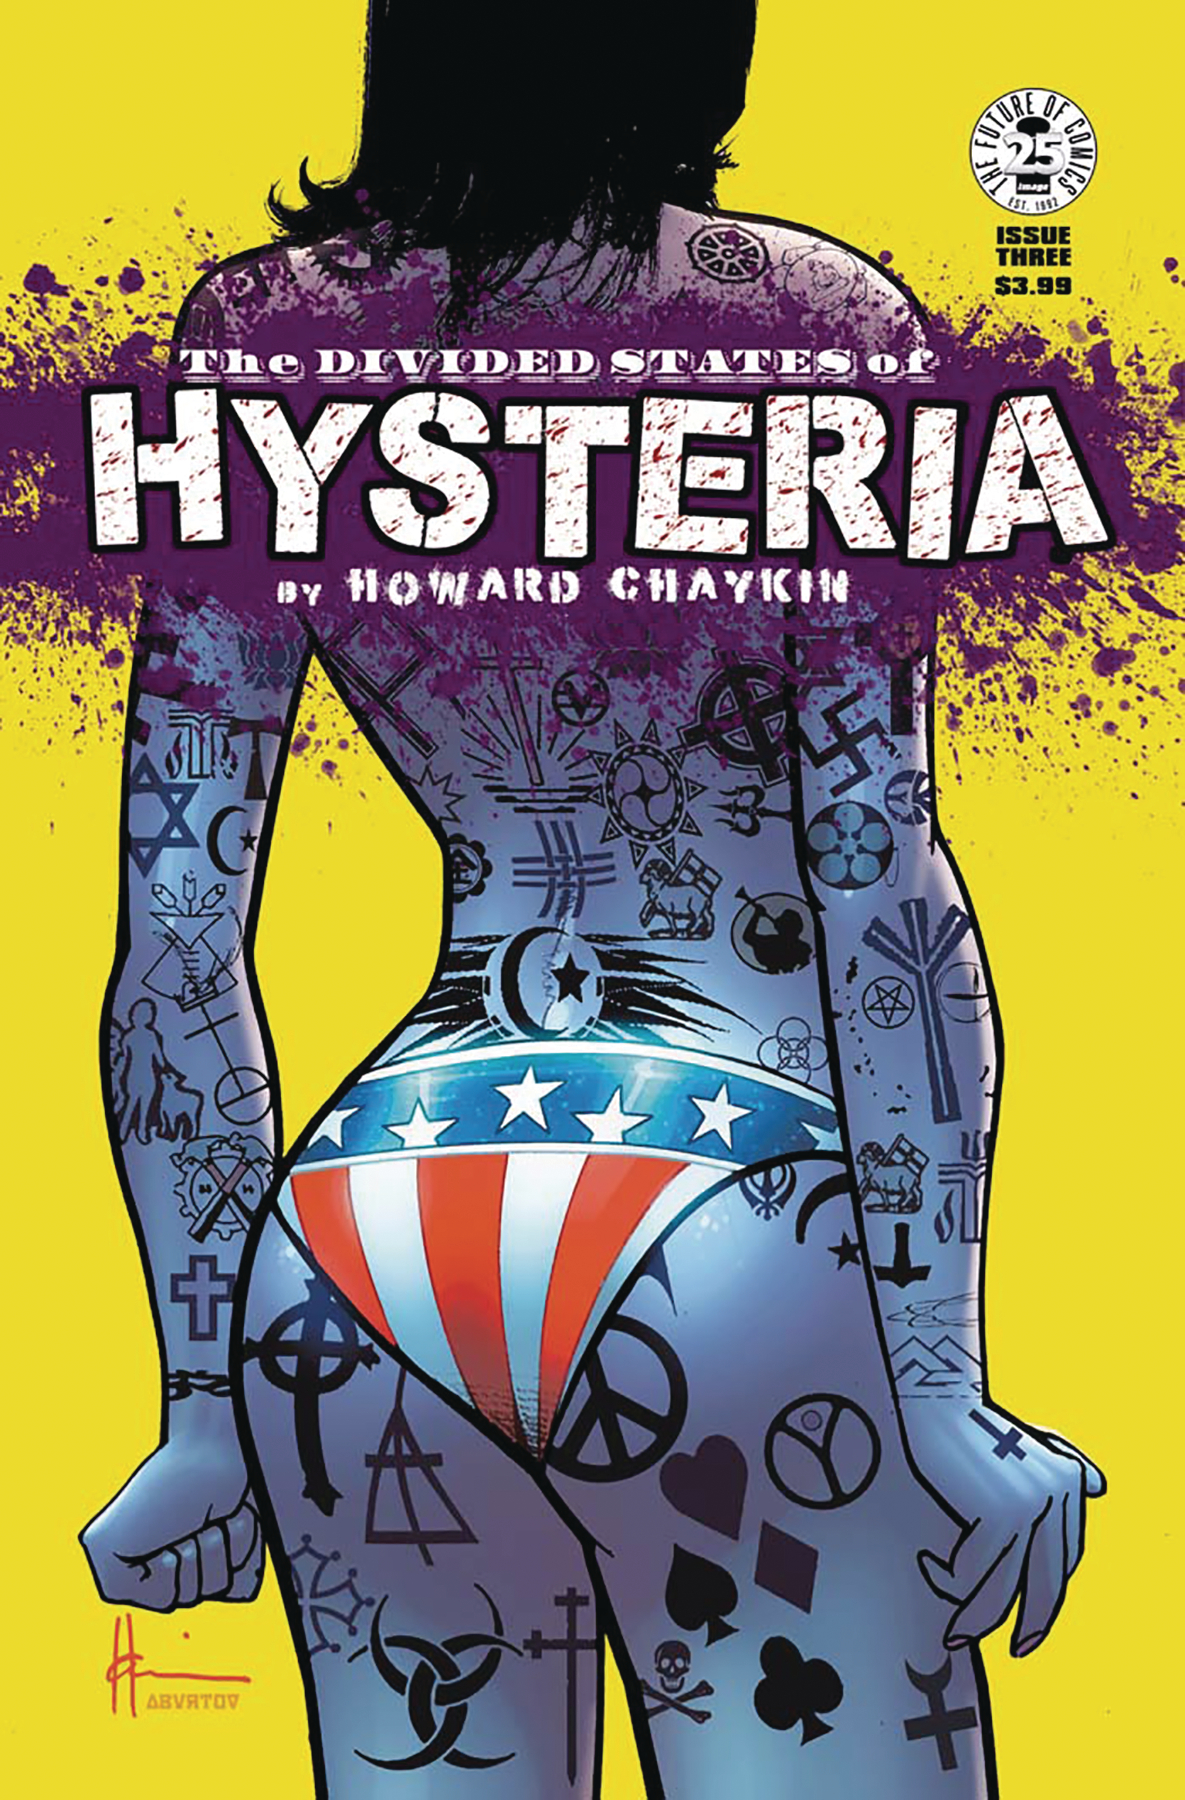 DIVIDED STATES OF HYSTERIA #3